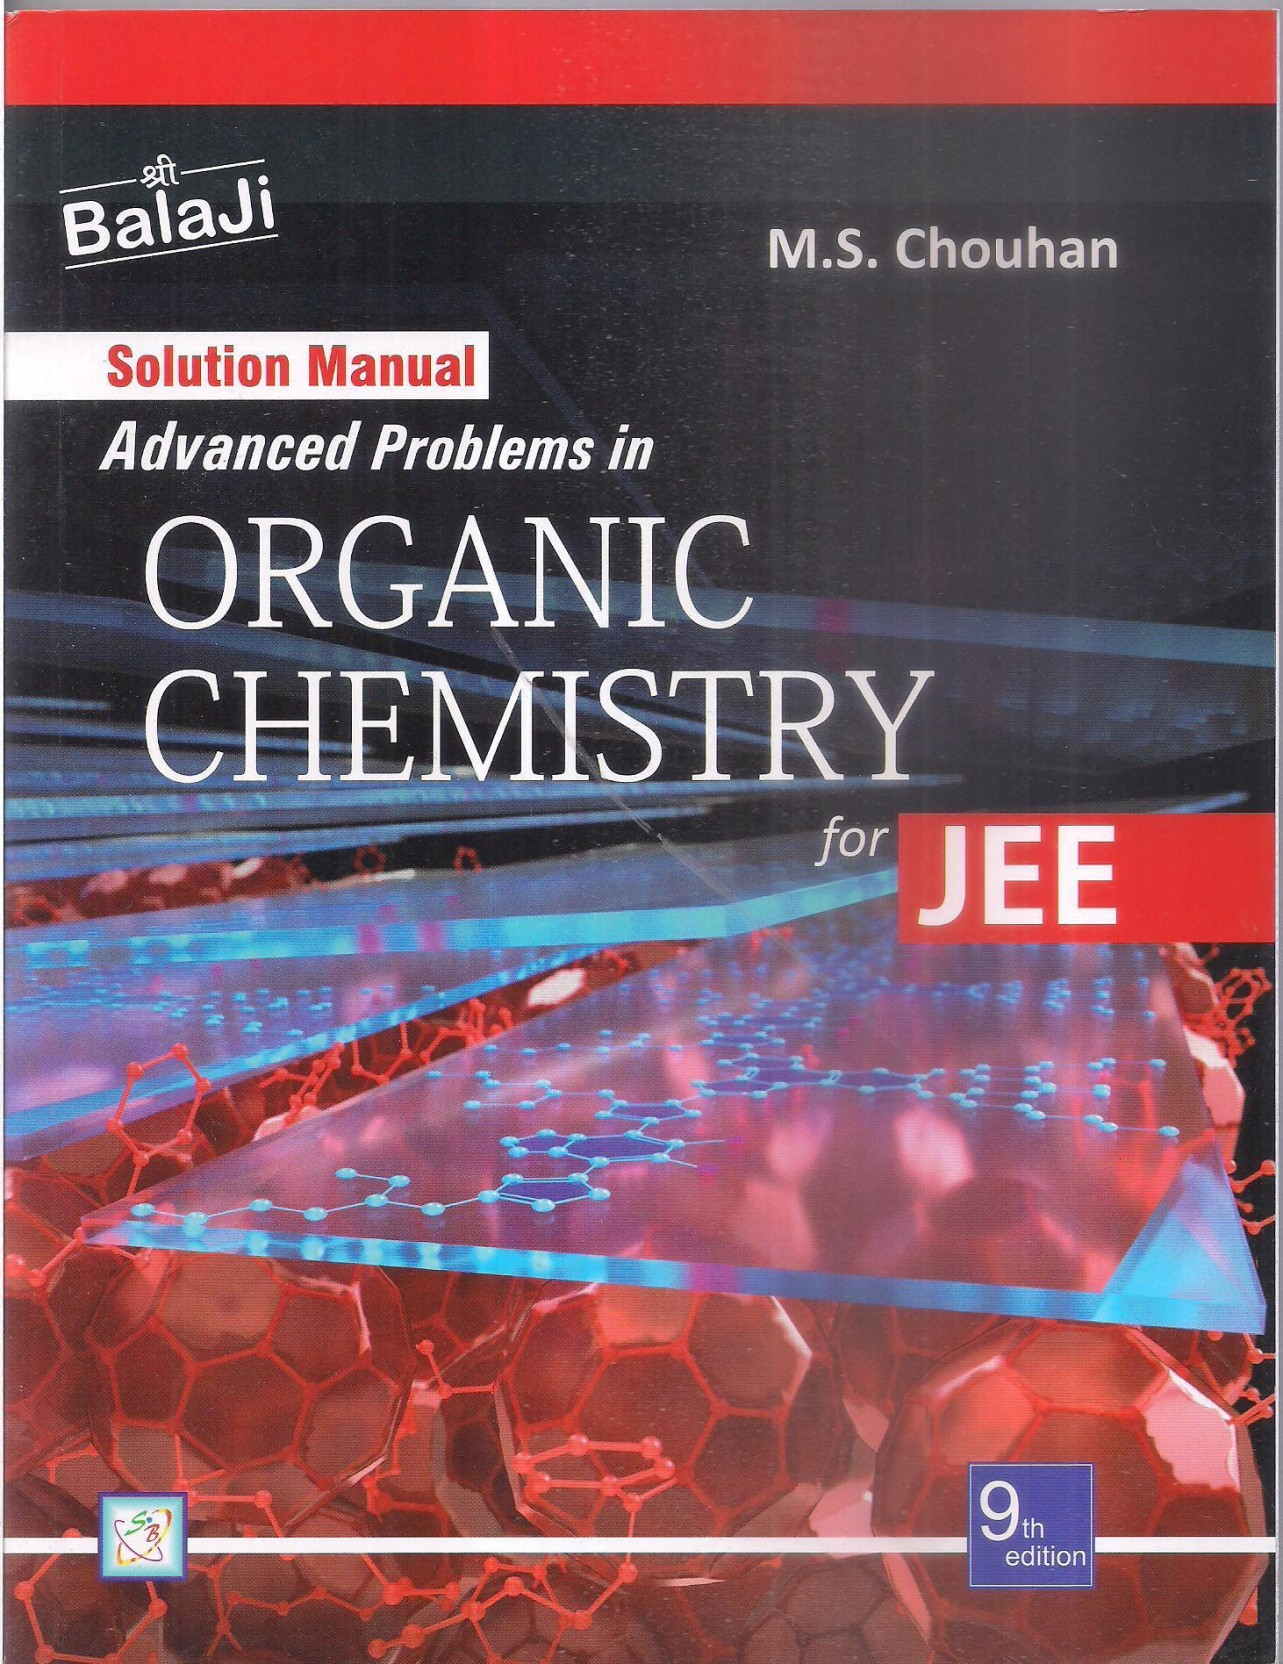 Solution Manual Of Advanced Problems In Organic Chemistry By M S Chauhan.  Share